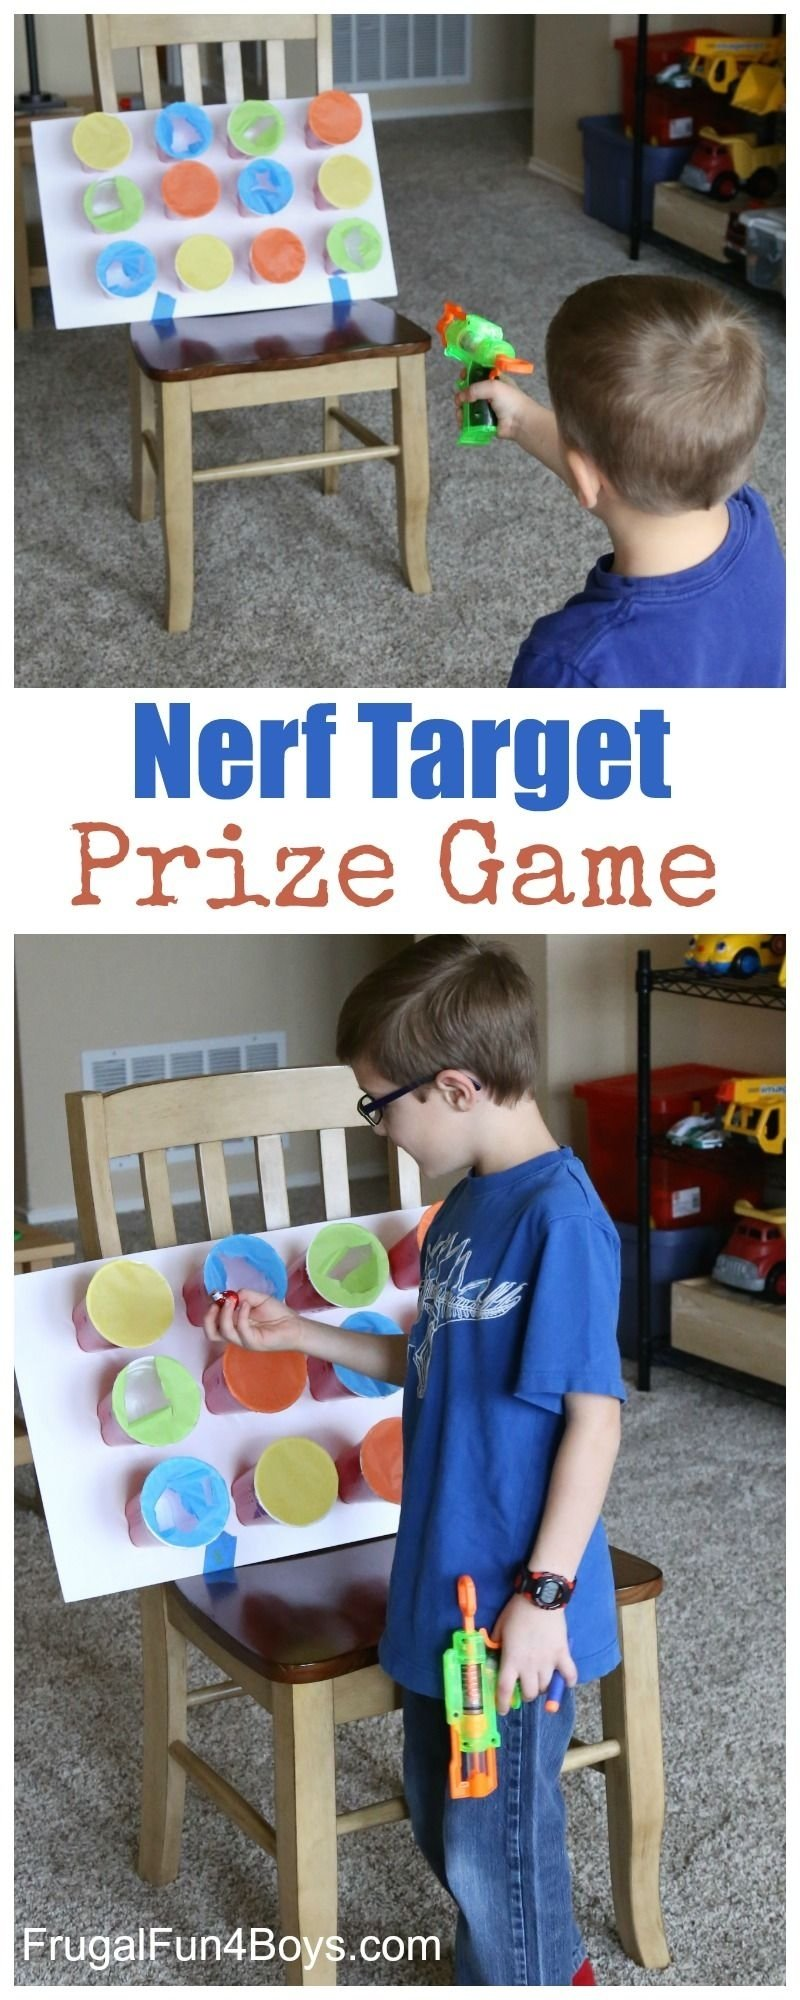 10 Spectacular Kids Birthday Party Game Ideas nerf target prize game fun party games party games and target 1 2021